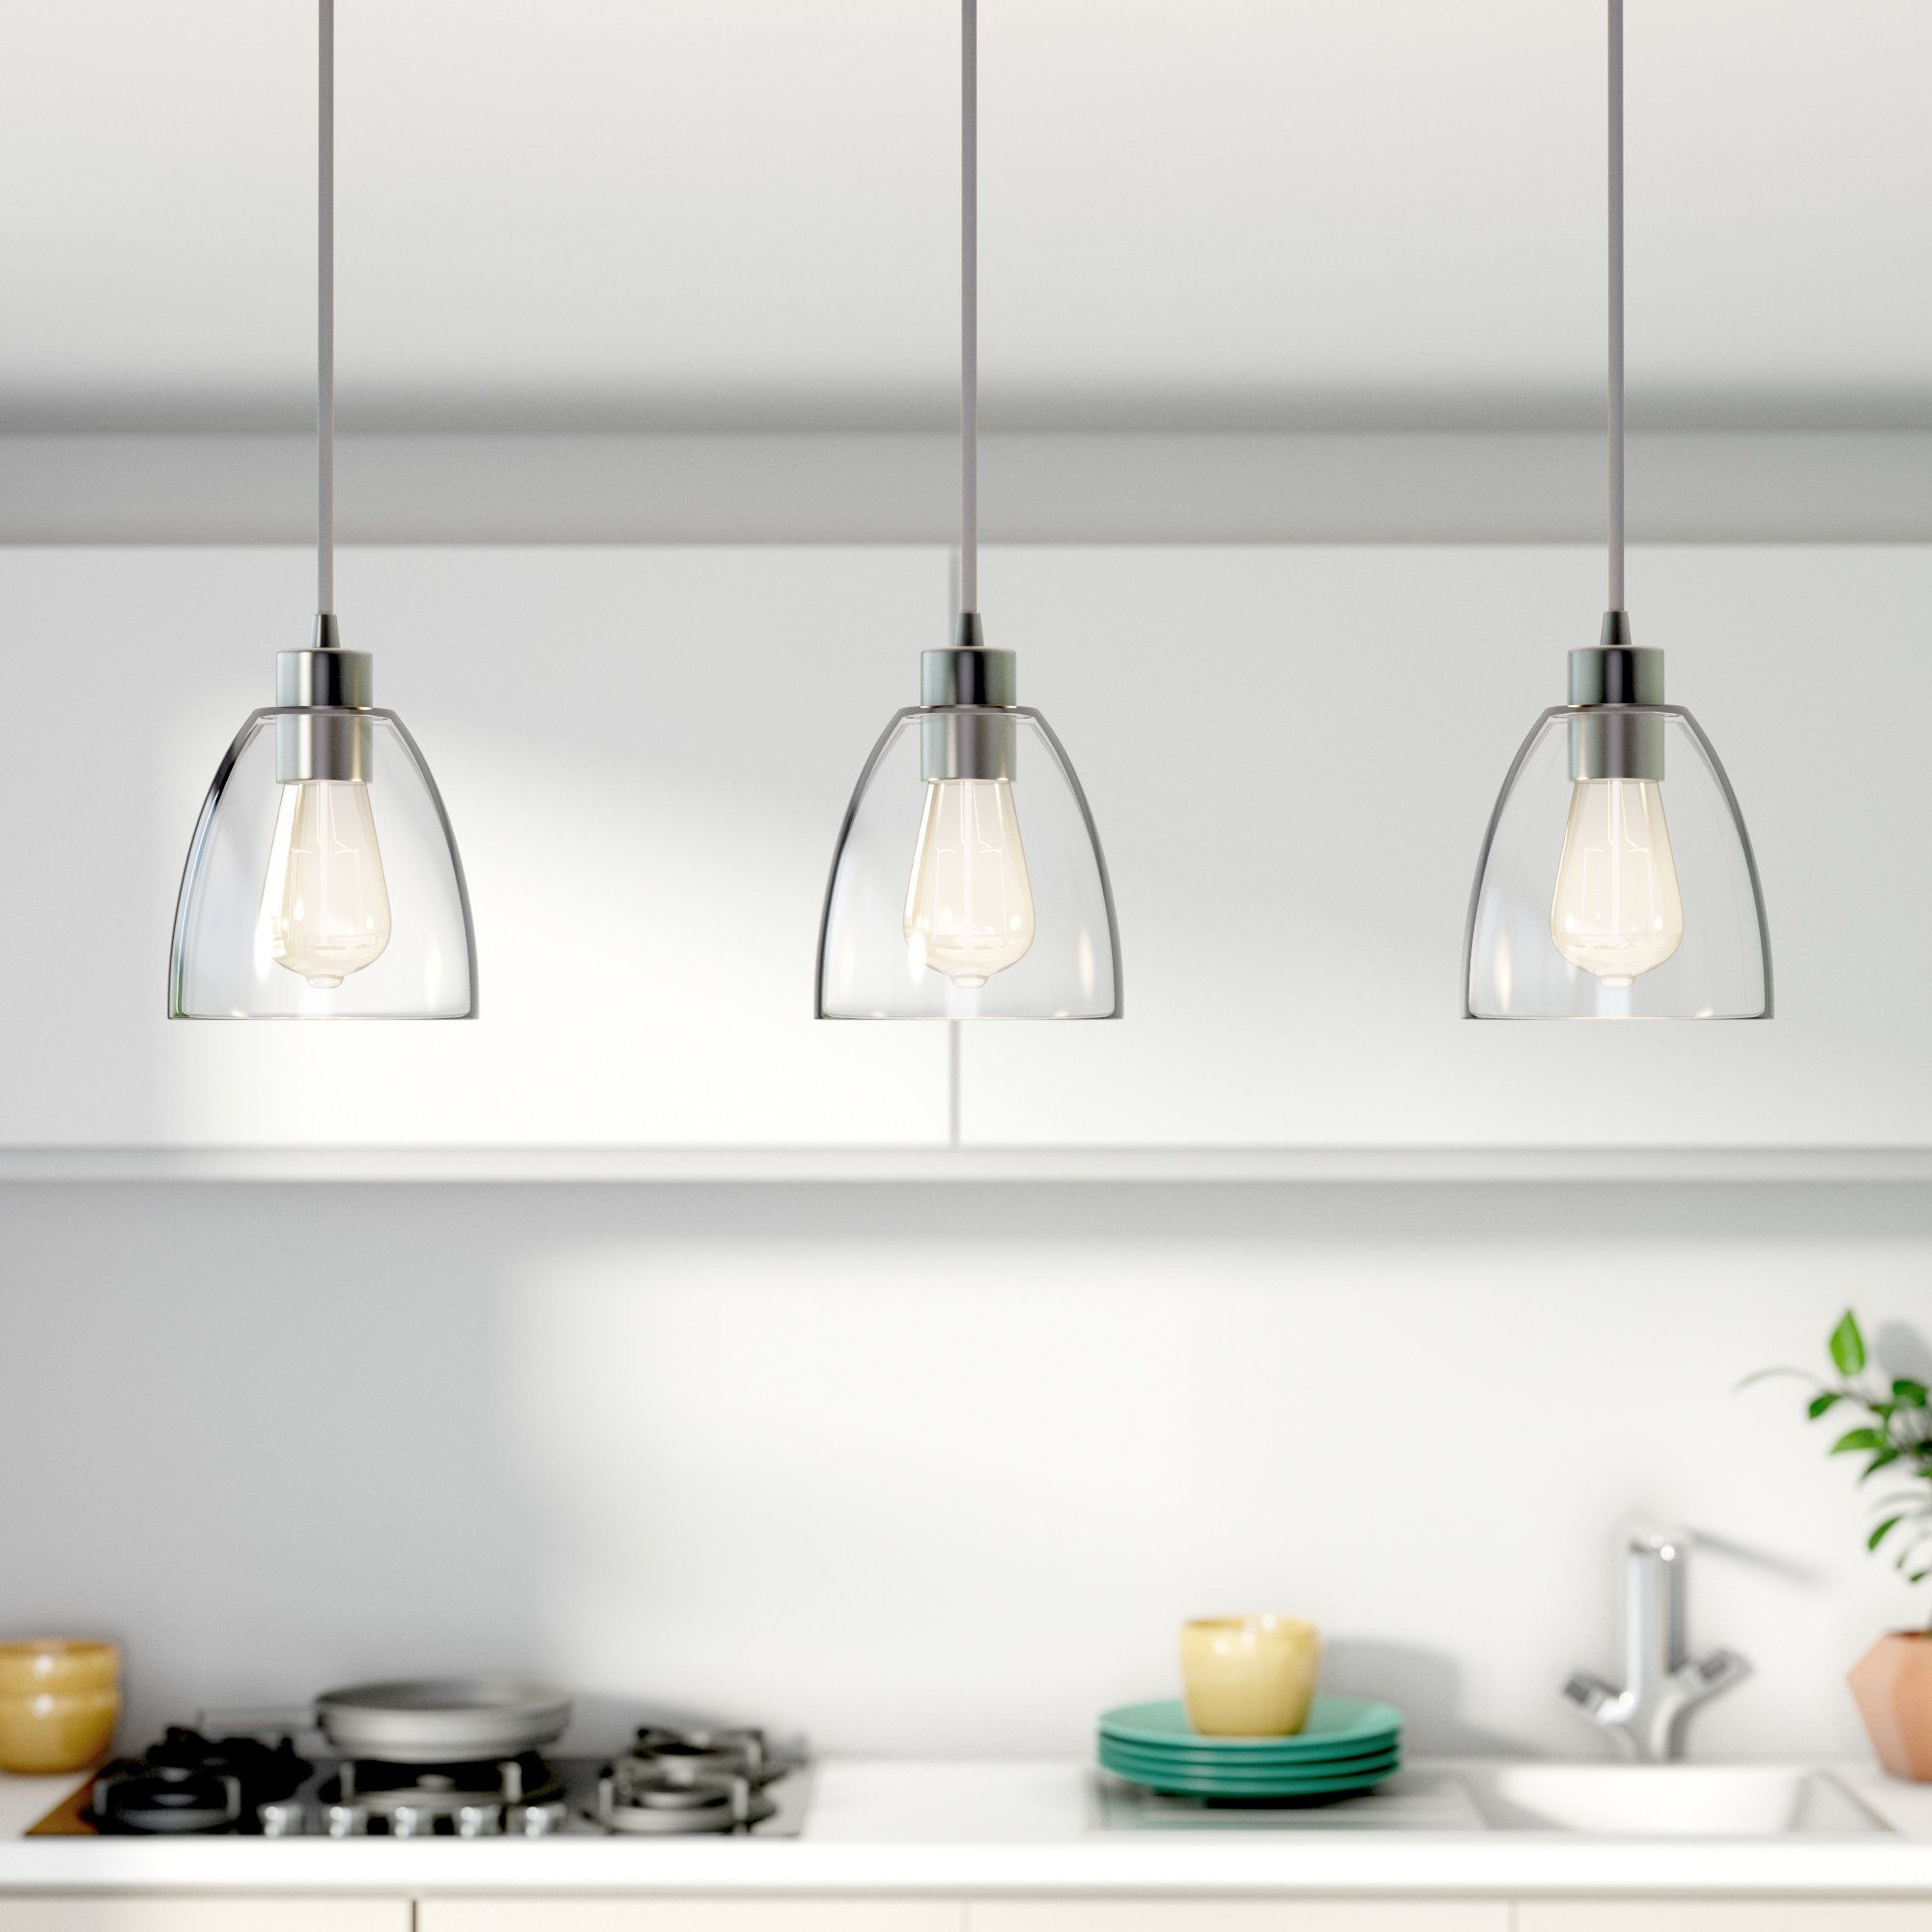 Kitchen Island Pendant Lights Lower Cabinets Cadorette 3 Light Products